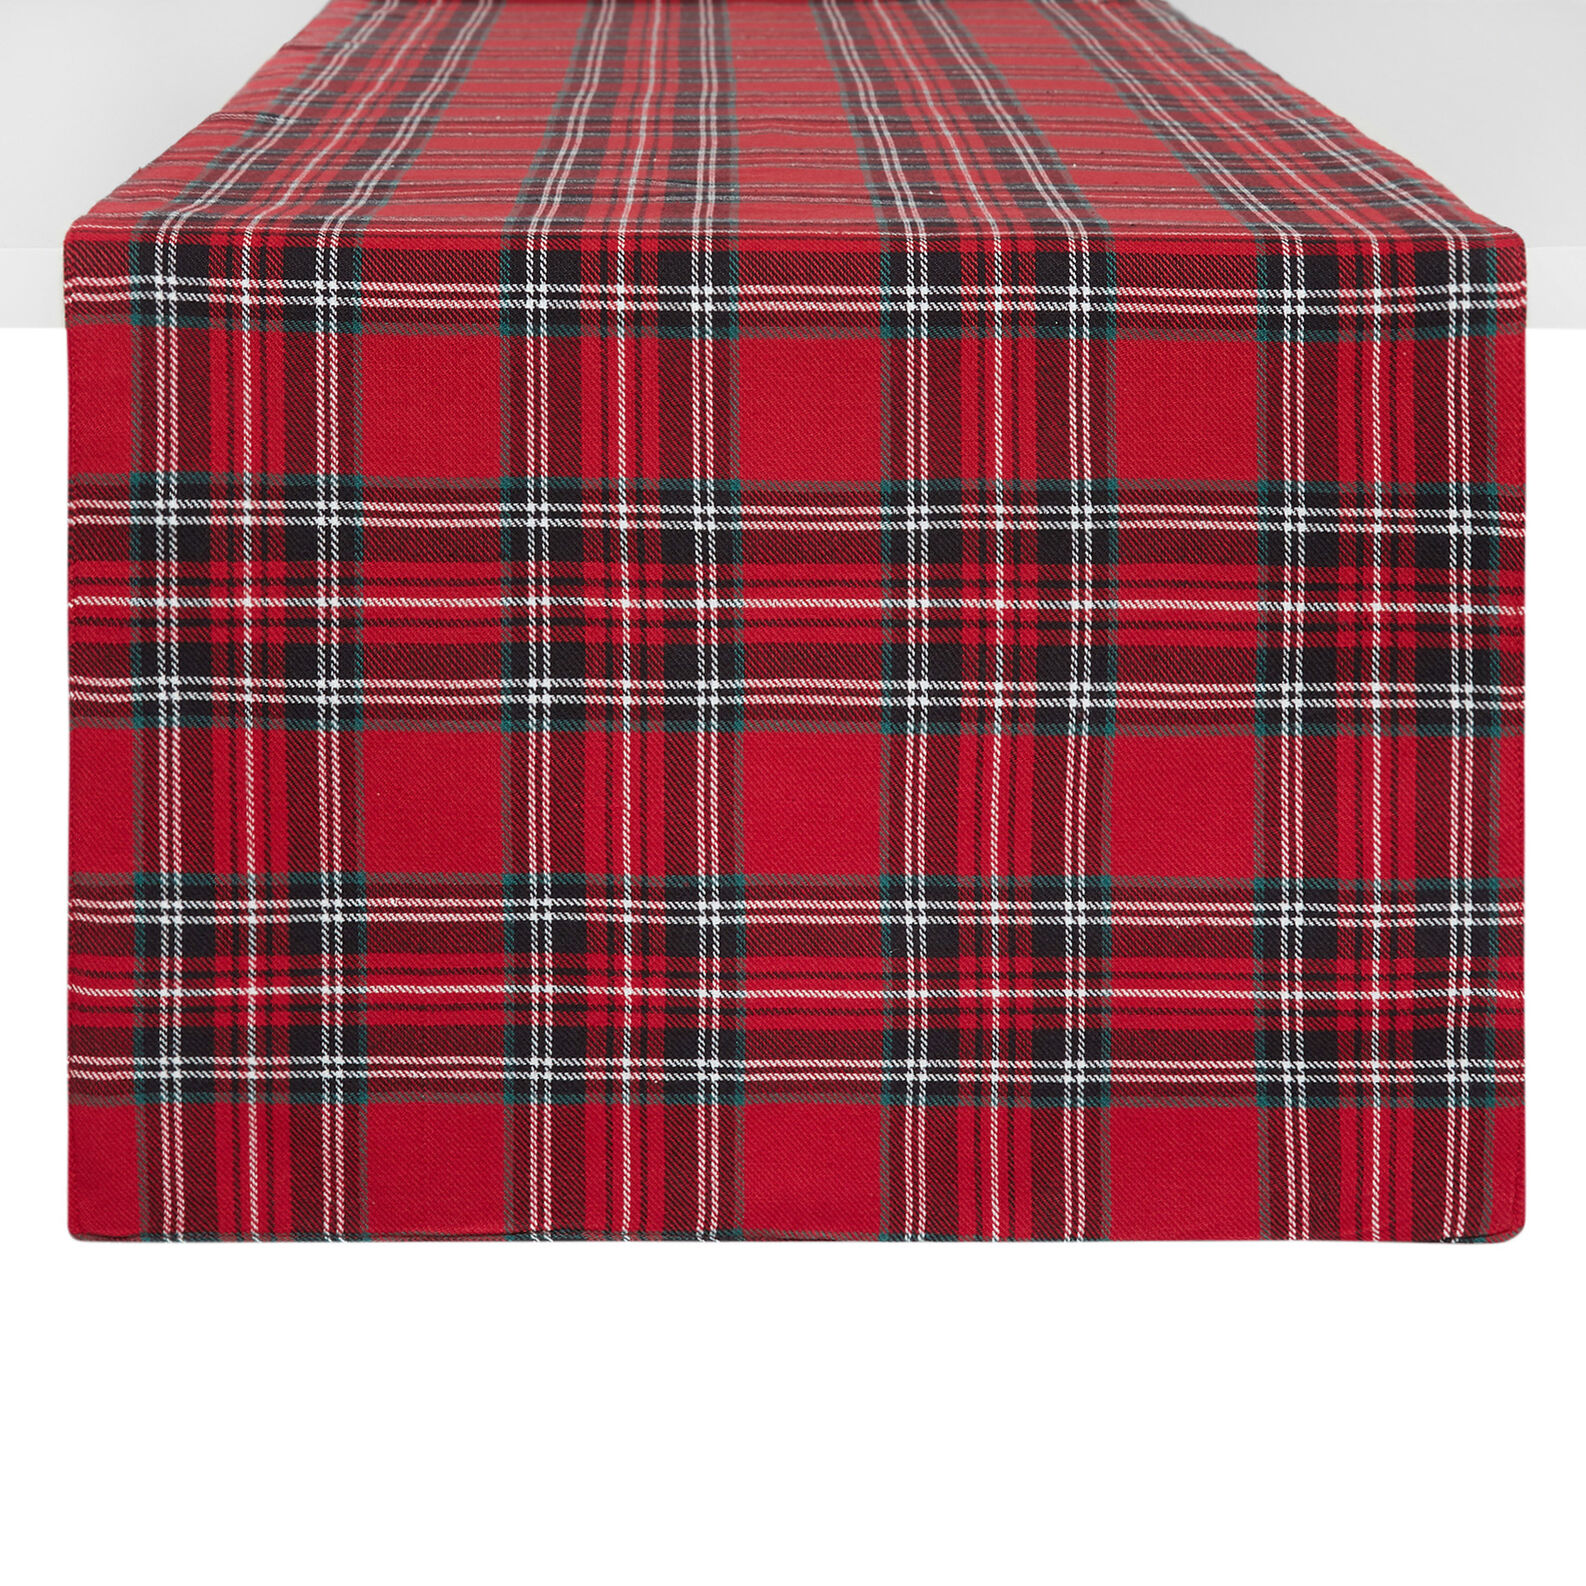 Cotton twill table runner with tartan motif